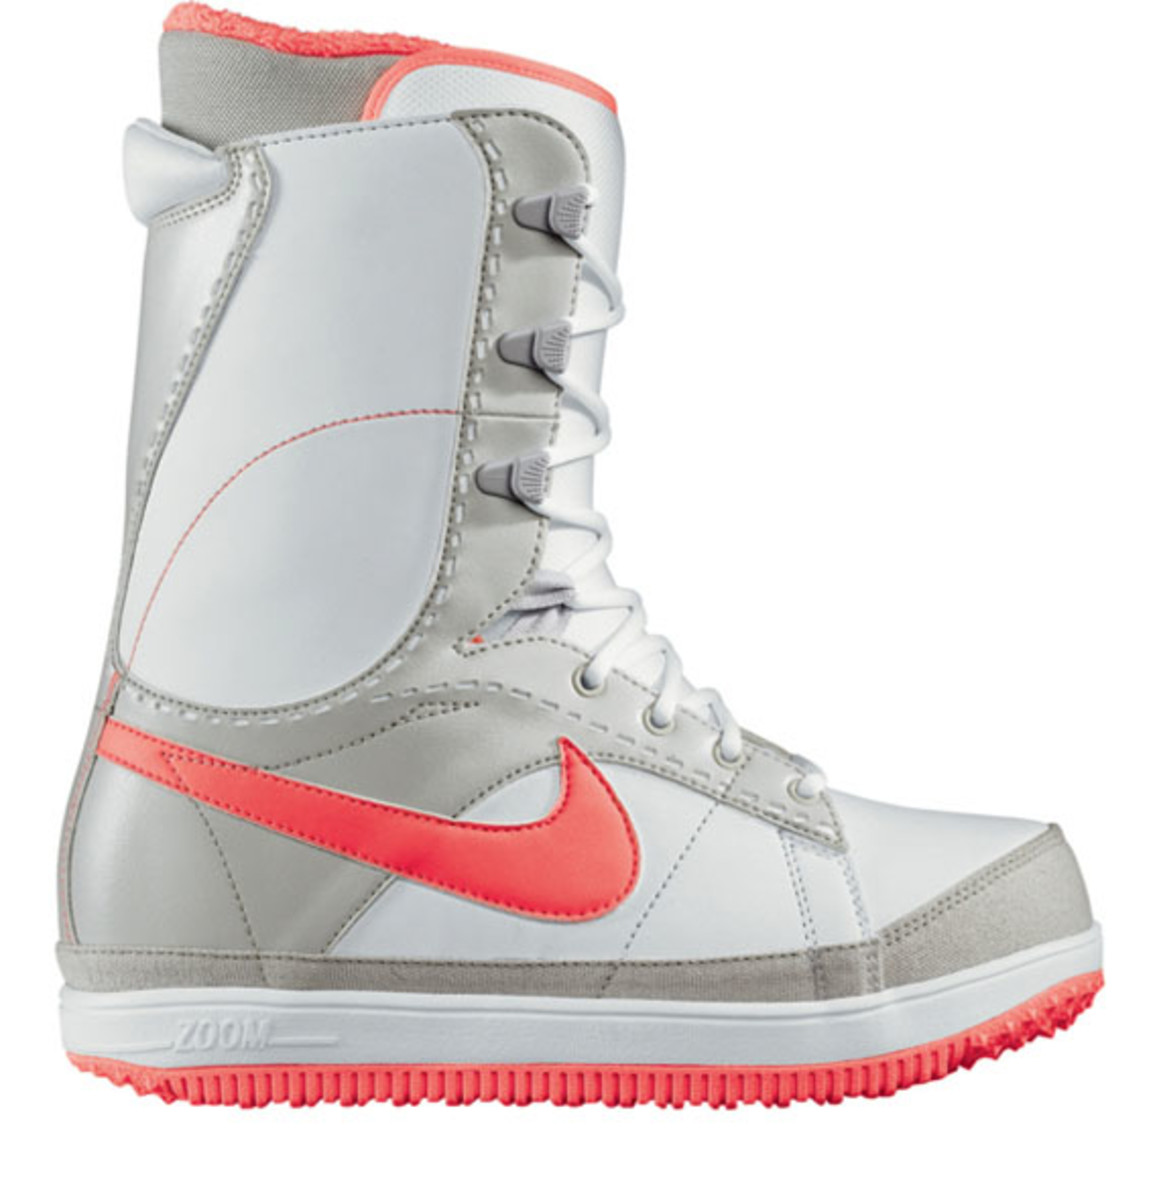 nike-snowboarding-boots-9